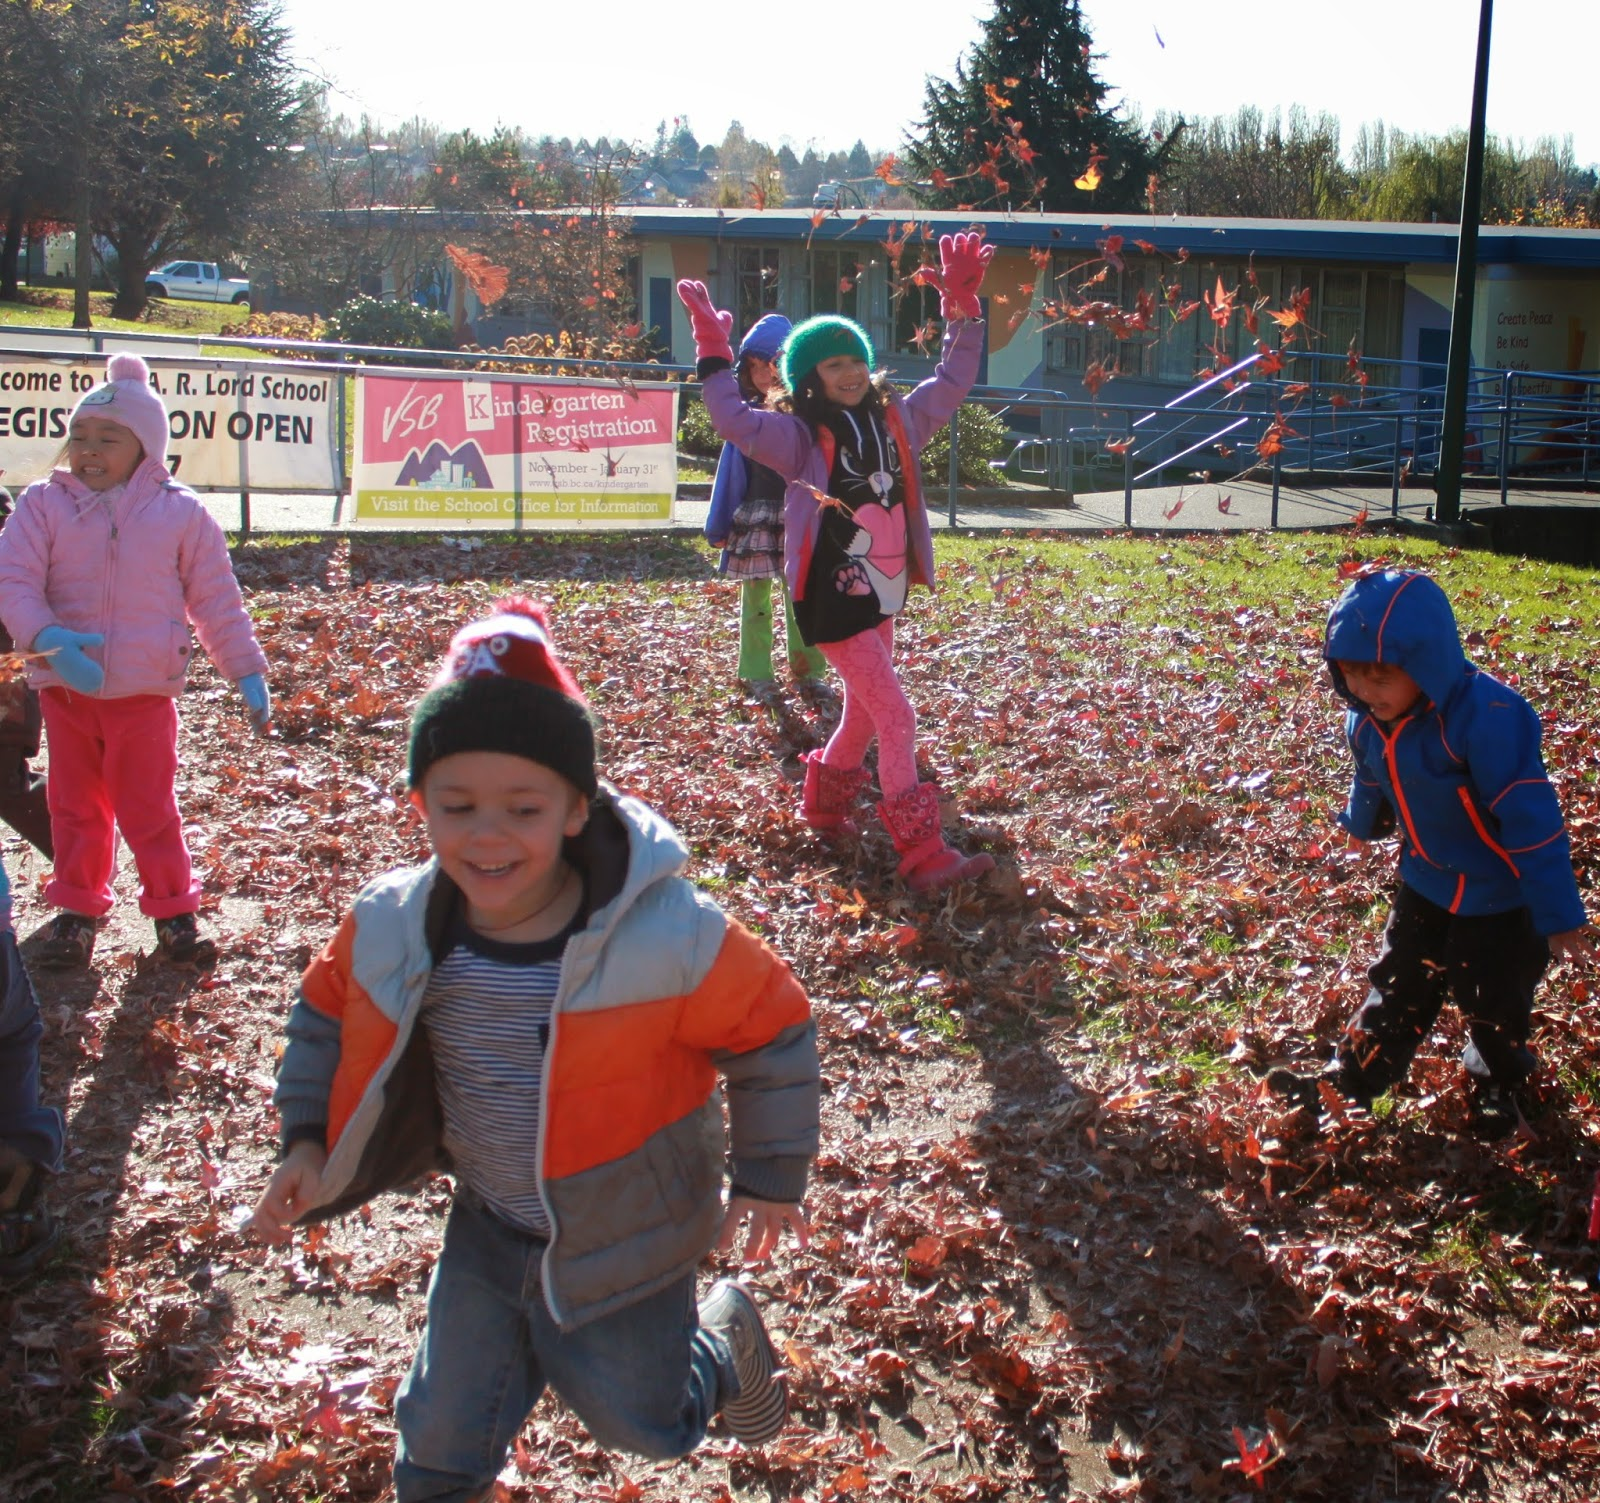 outdoor play and learning Outdoor learning can have a positive impact on children's development but it needs to be formally adopted by national curricula, a report suggests.